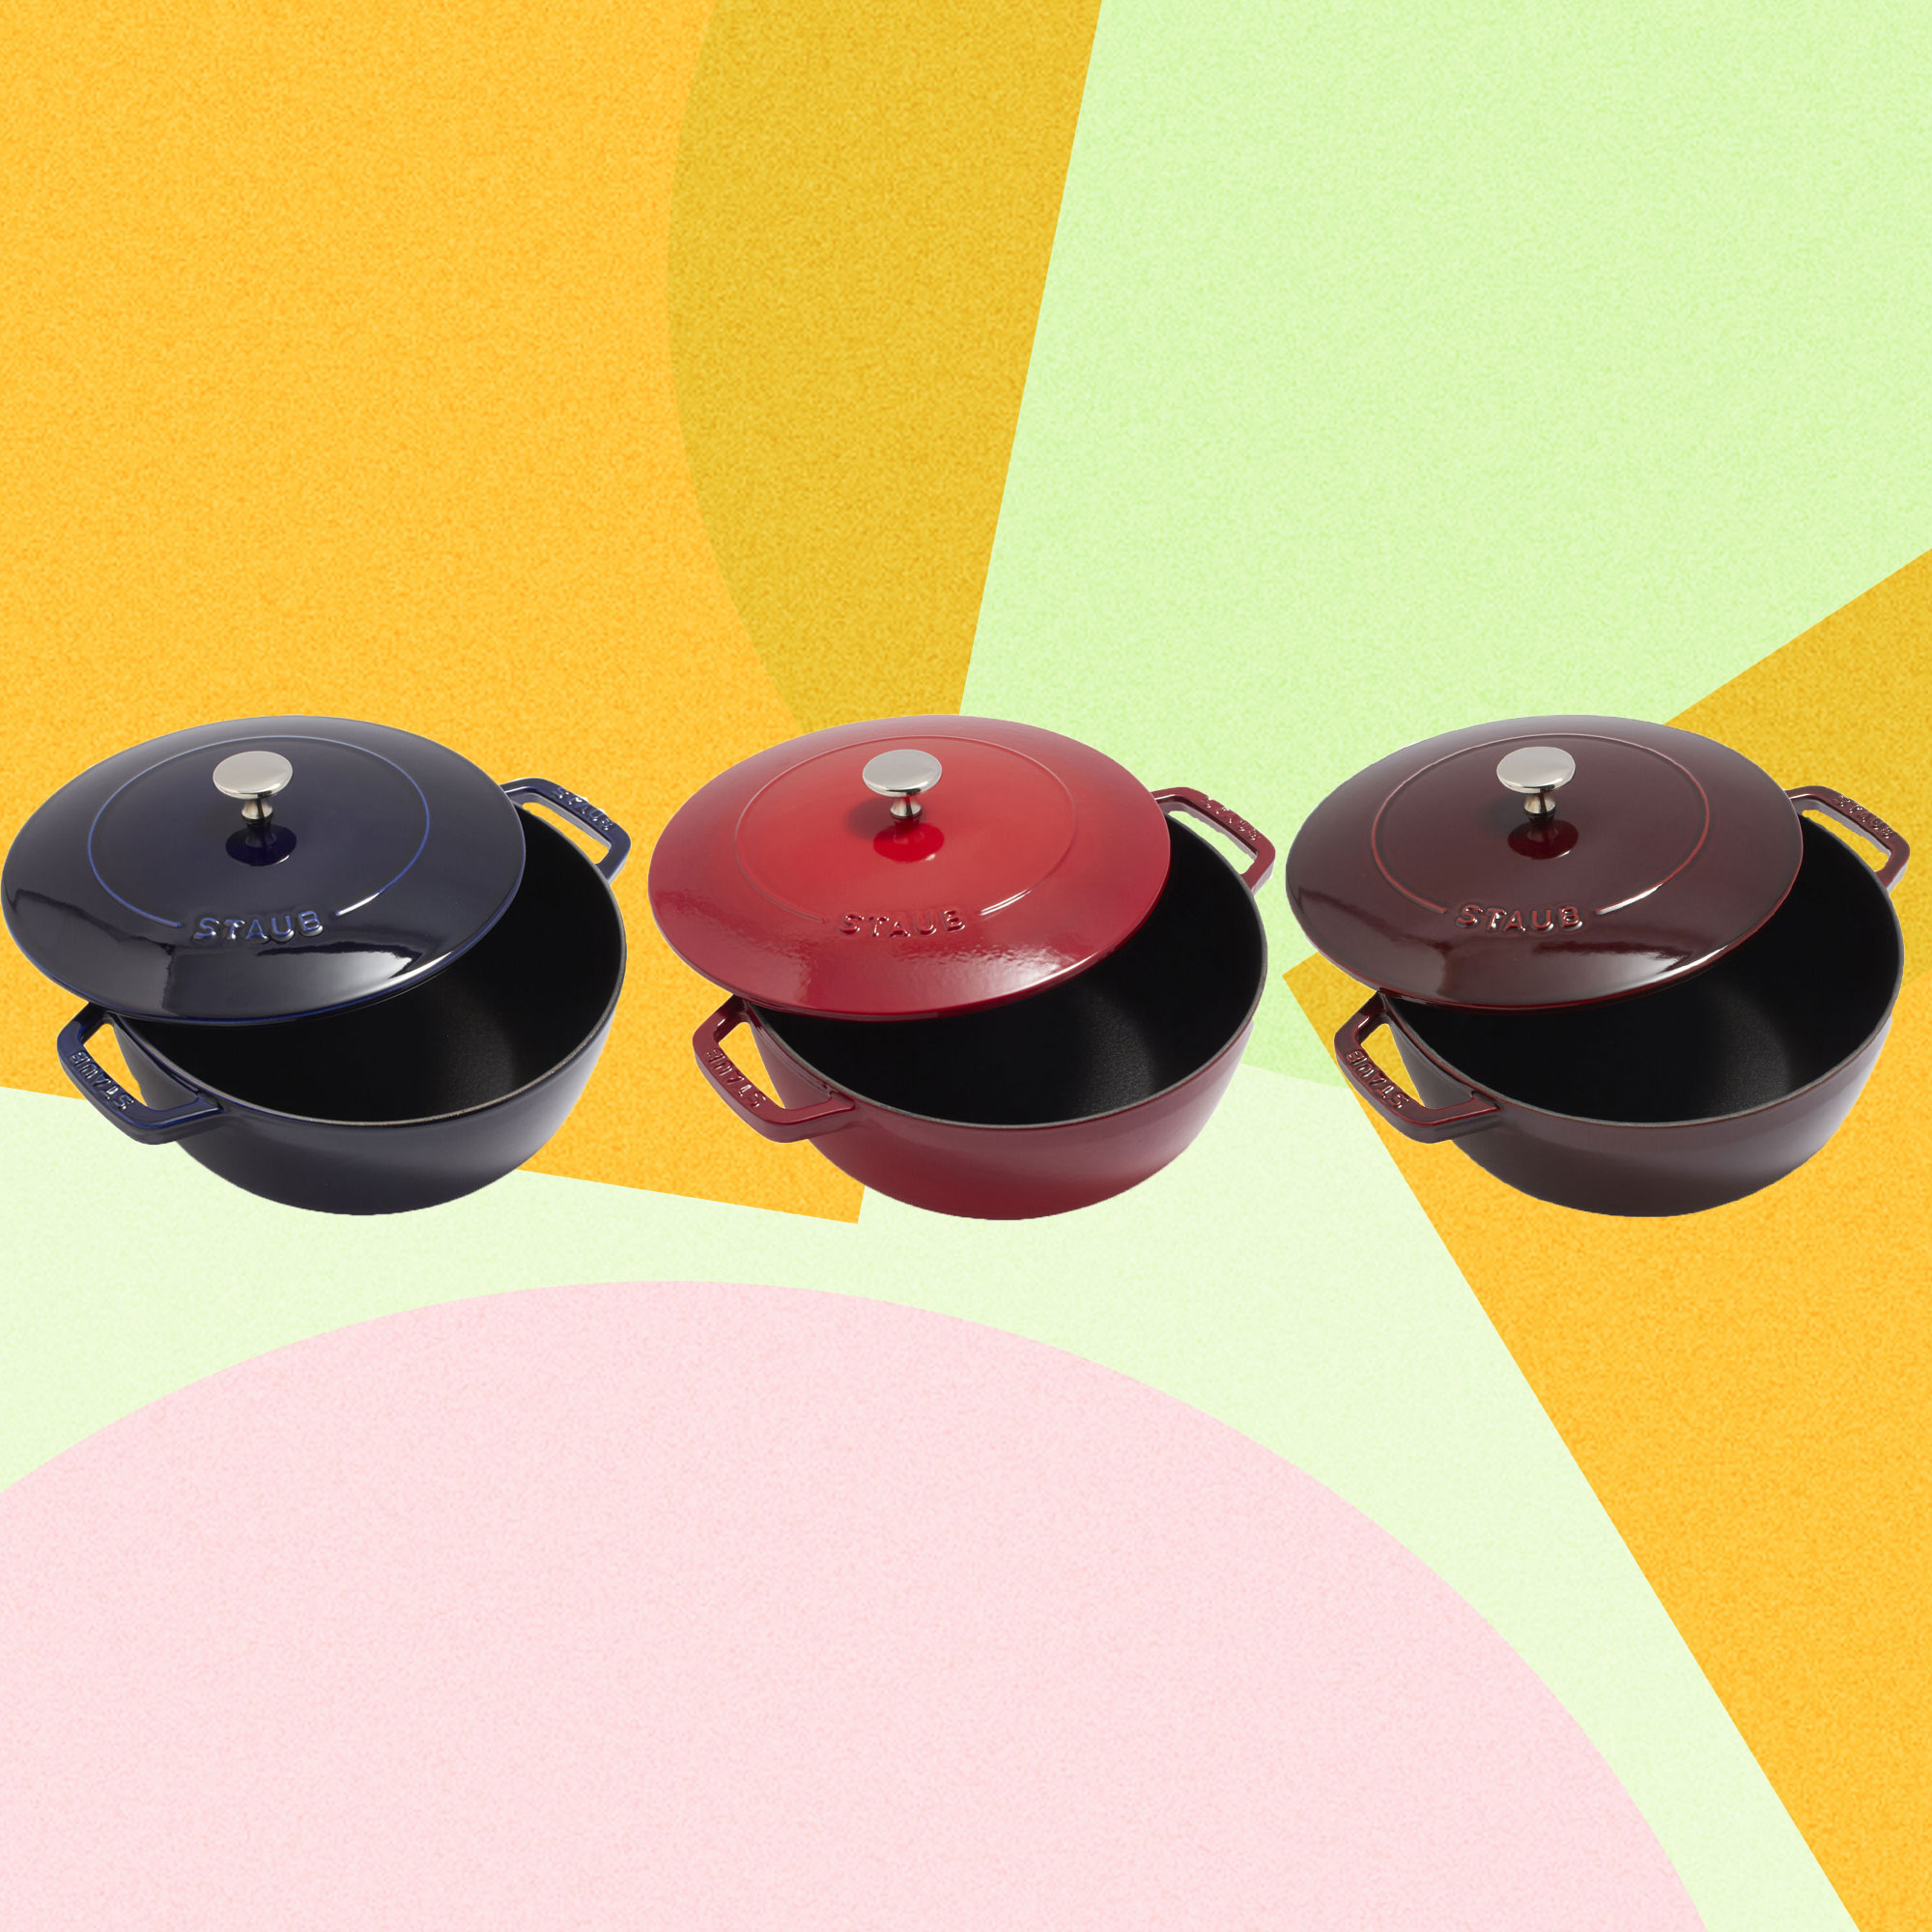 Holiday Gift Alert: This Staub Dutch Oven Is Over Half Off Right Now